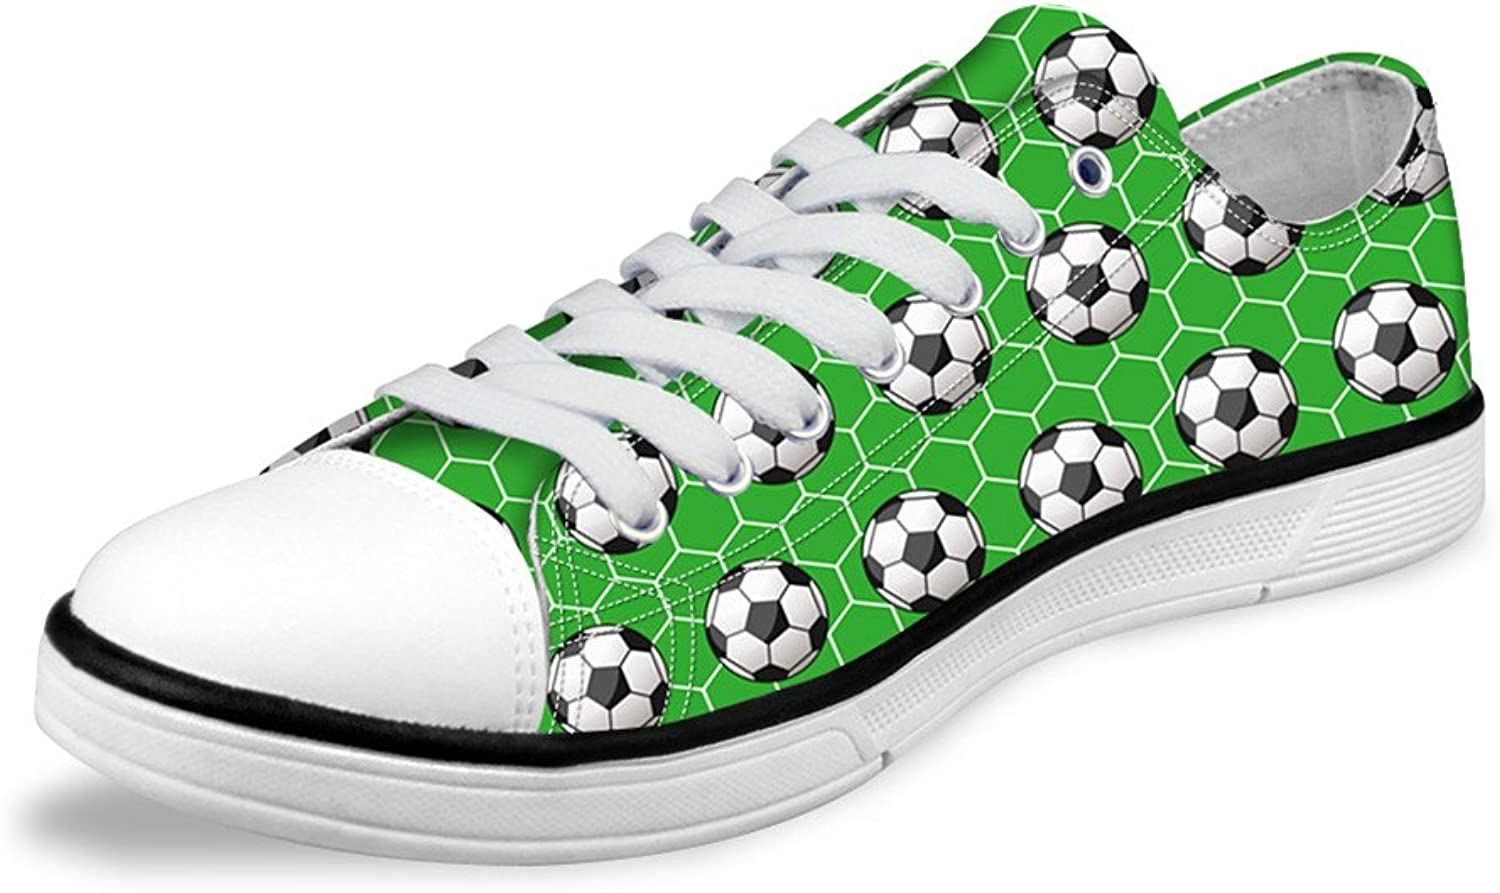 Micandle Boys Personalized Low Top Lace Up shoes Cool Football Pattern Sneaker